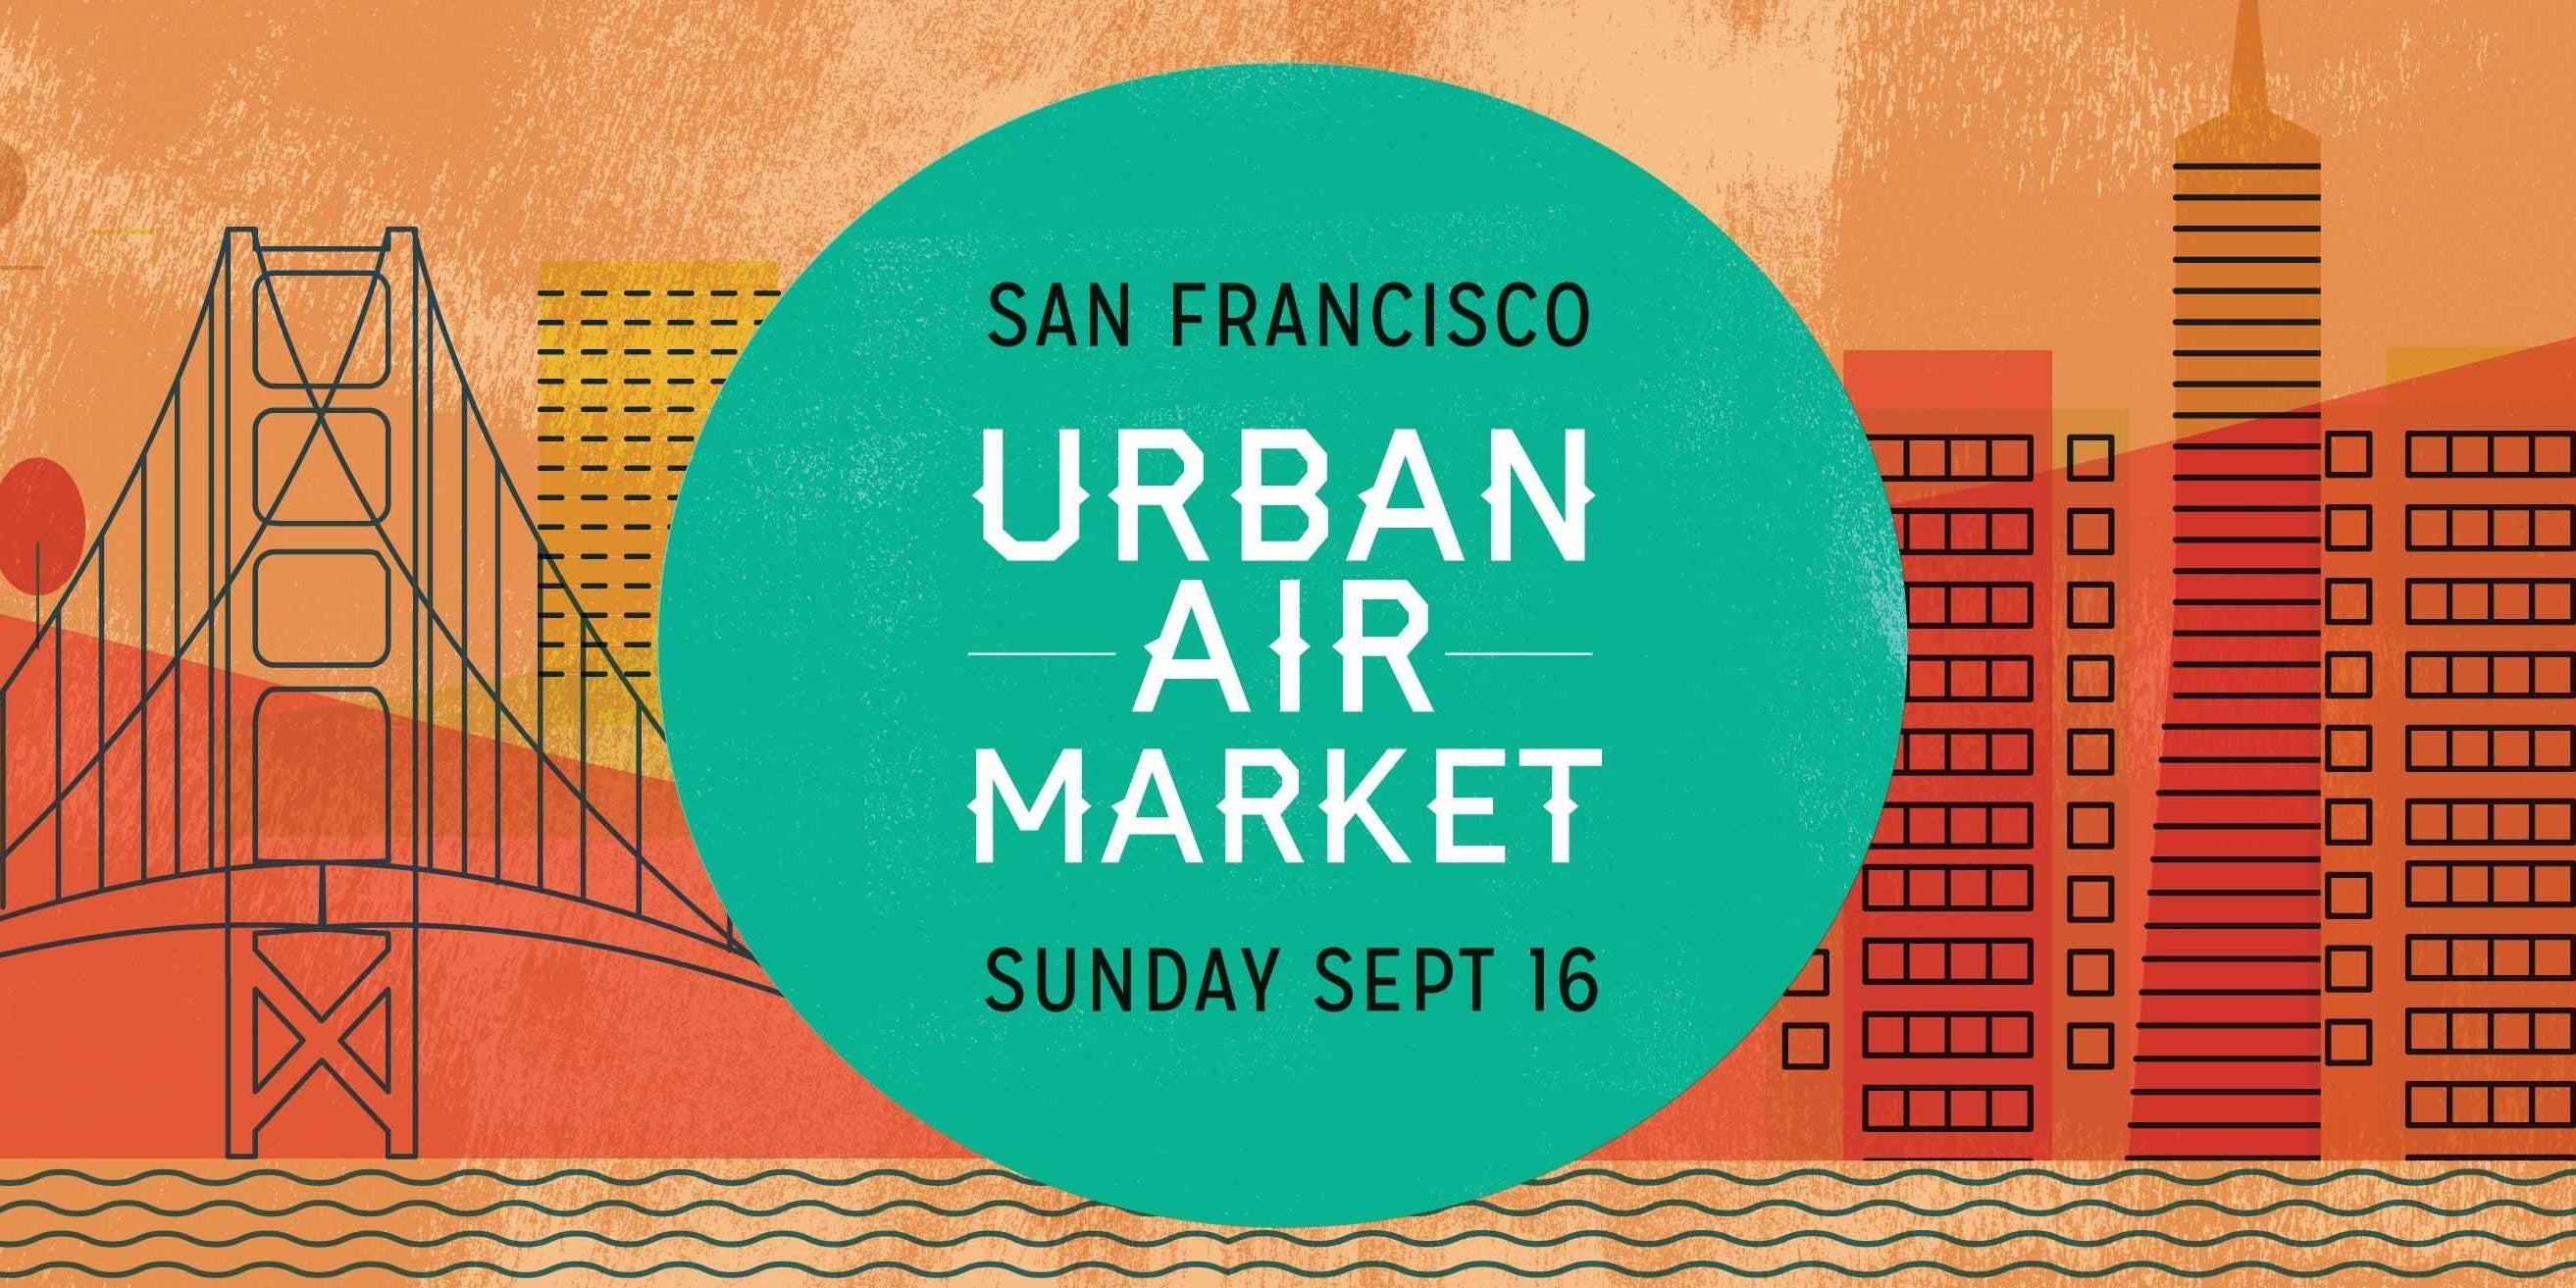 Urban Air Market, San Francisco, September Katie Dean Jewelry, activities, free event